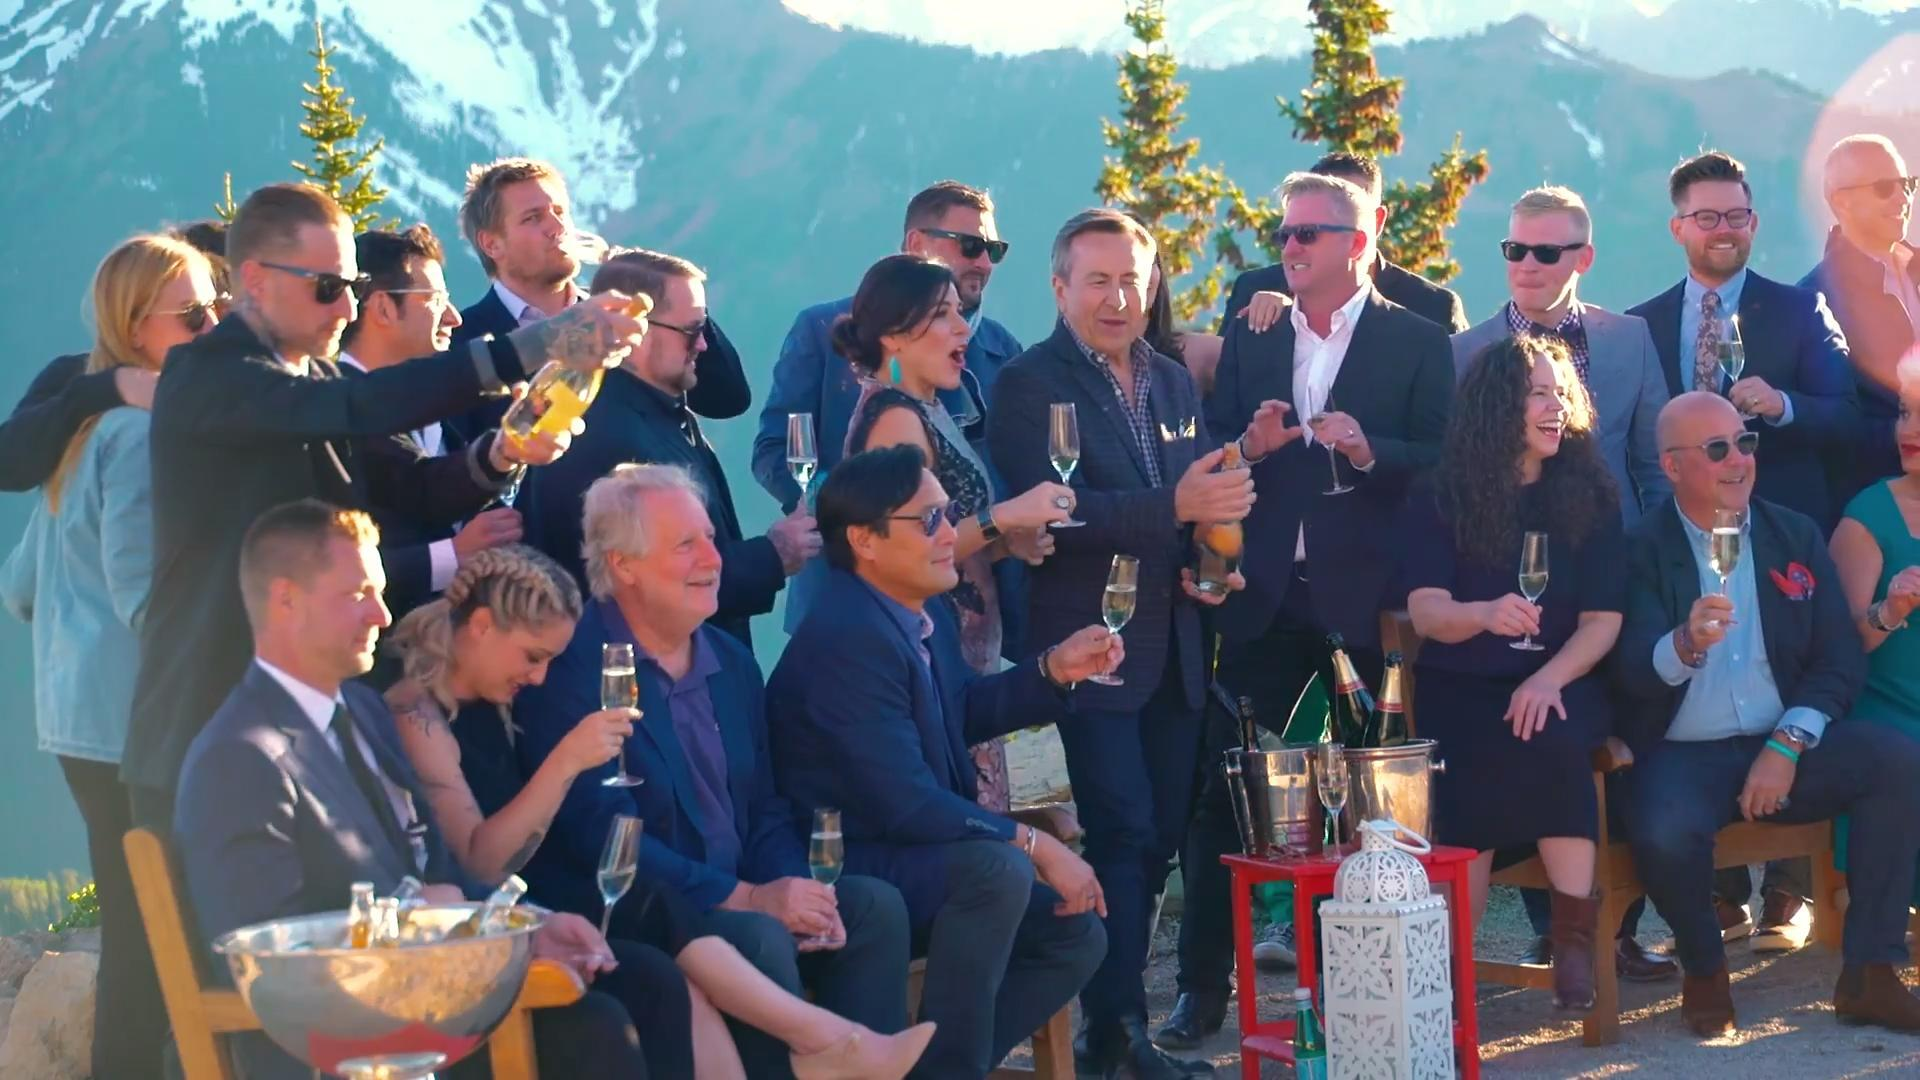 Taste of the Classic: The Best Moments at the 2017 Food & Wine Classic in Aspen